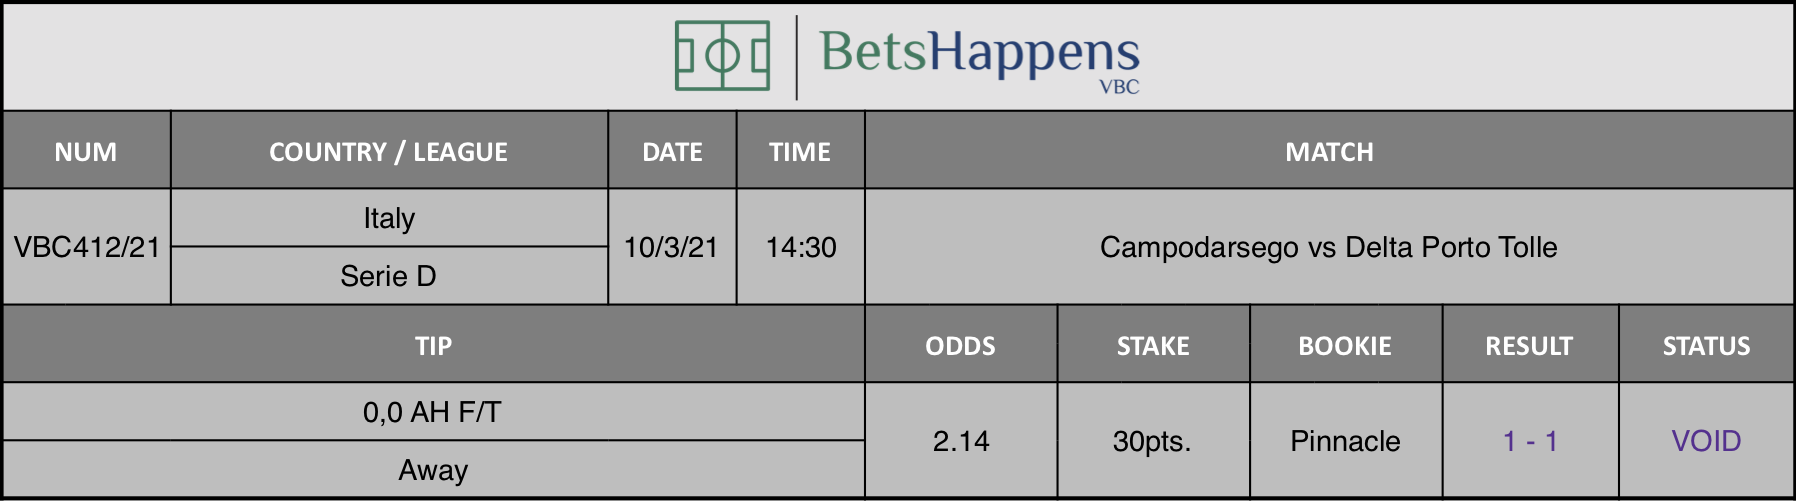 Results of our tip for the Campodarsego vs Delta Porto Tolle match where 0,0 AH F/T Away is recommended.